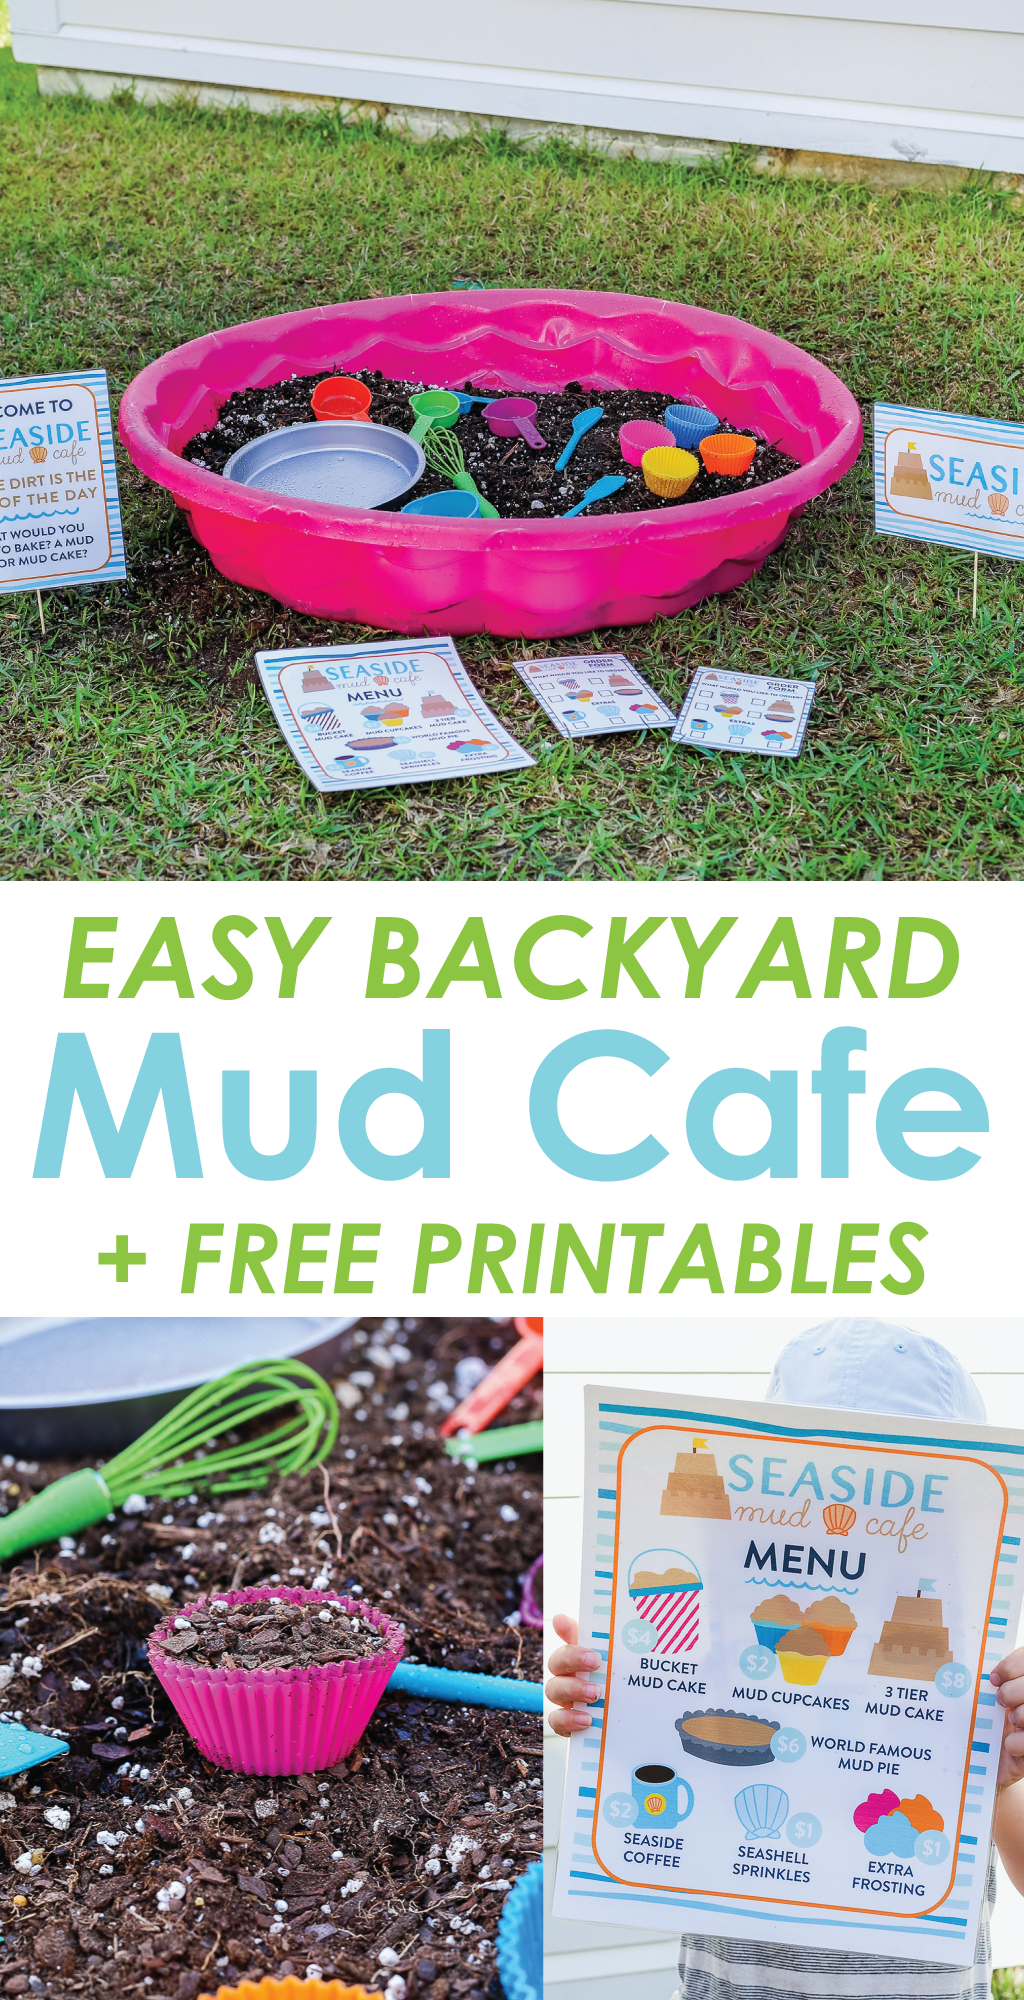 Get outside this summer with this easy outdoor imaginative play idea for kids. Seaside Mud Cafe is the perfect activity that encourages imagination, play, and hands on learning. Includes FREE printables so you can easily set up your own mud kitchen in your own backyard. #kids #activity #outdoor #play #printable #learning #backyard